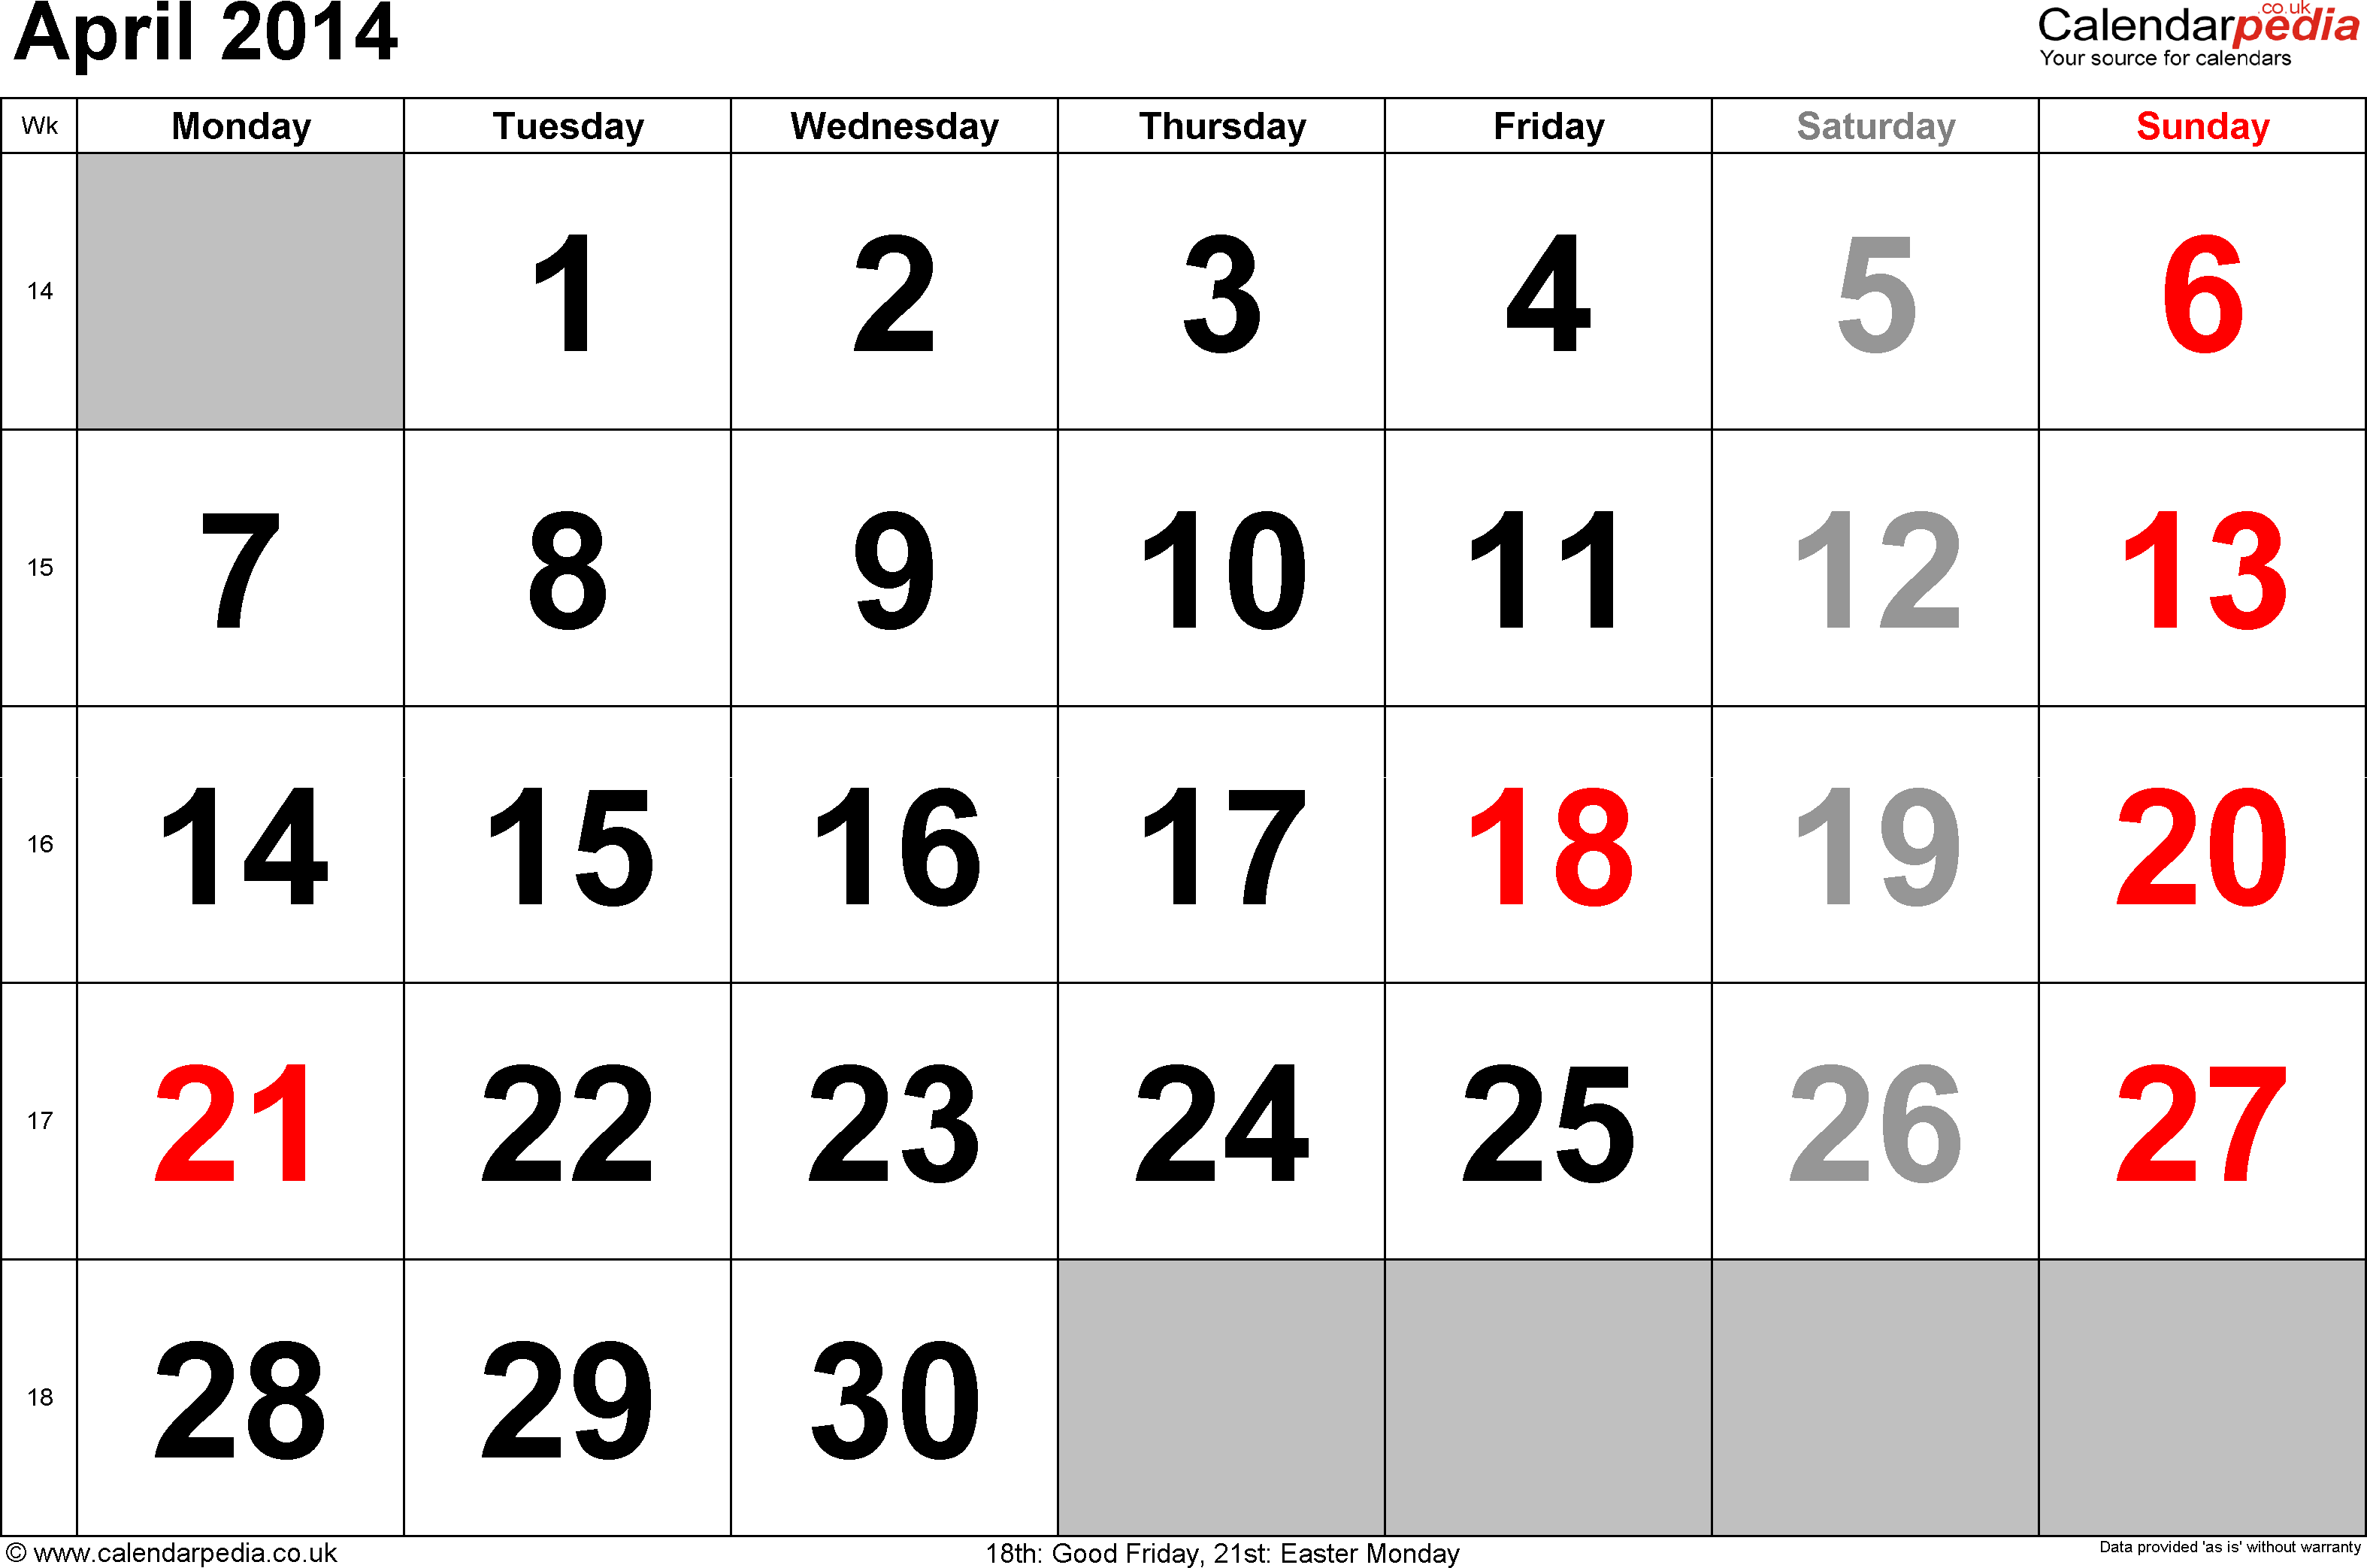 Calendar April 2014, landscape orientation, large numerals, 1 page, with UK bank holidays and week numbers